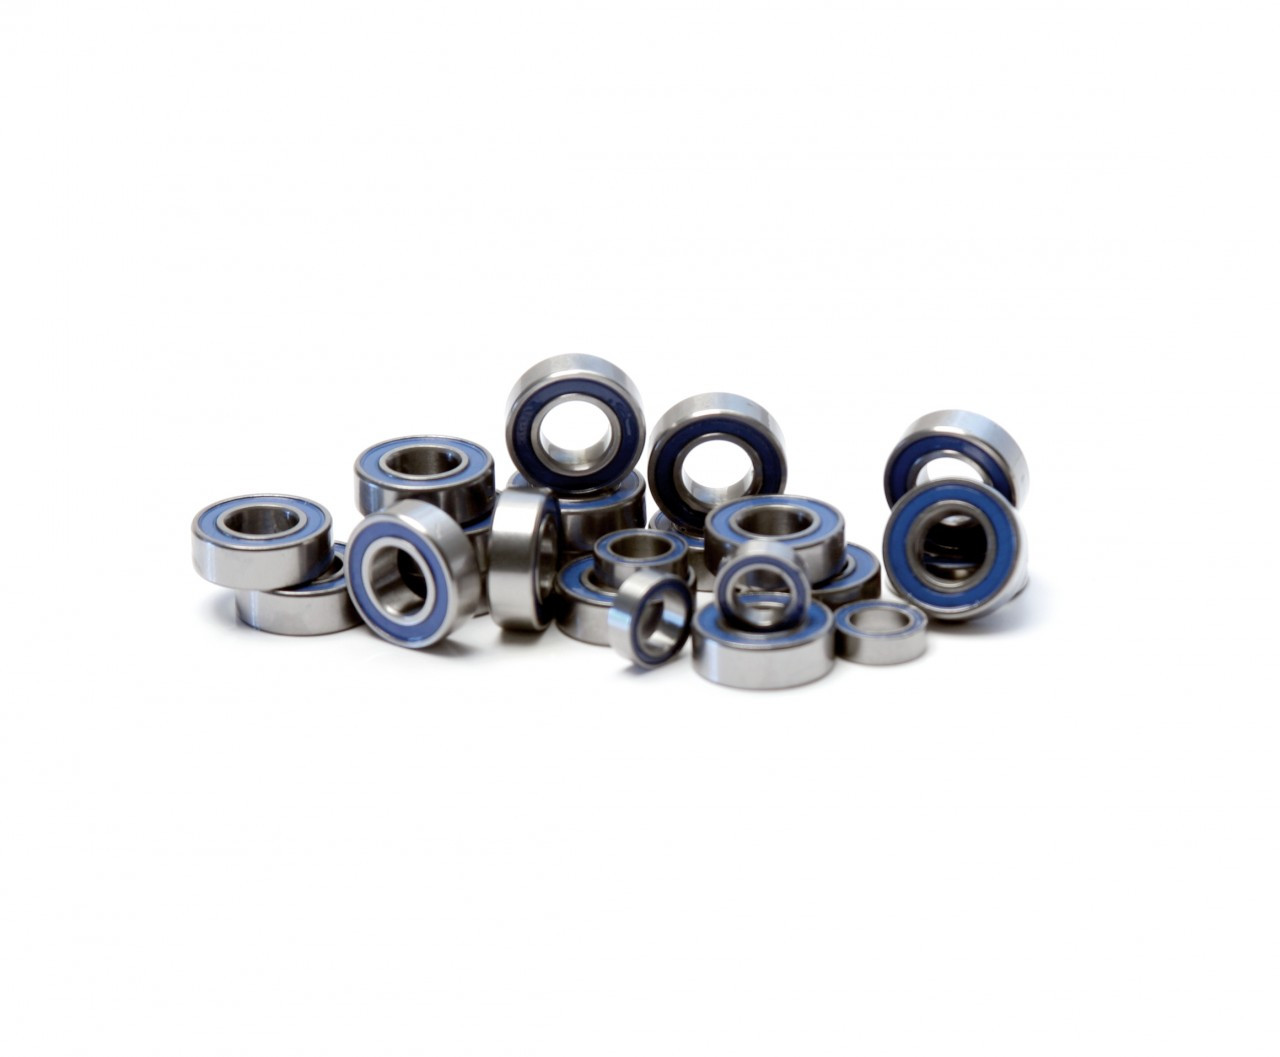 CLODBUSTER / BULLHEAD 24 PIECE FULL BEARING KIT By FULLFORCE RC Blue rubber sealed bearings.